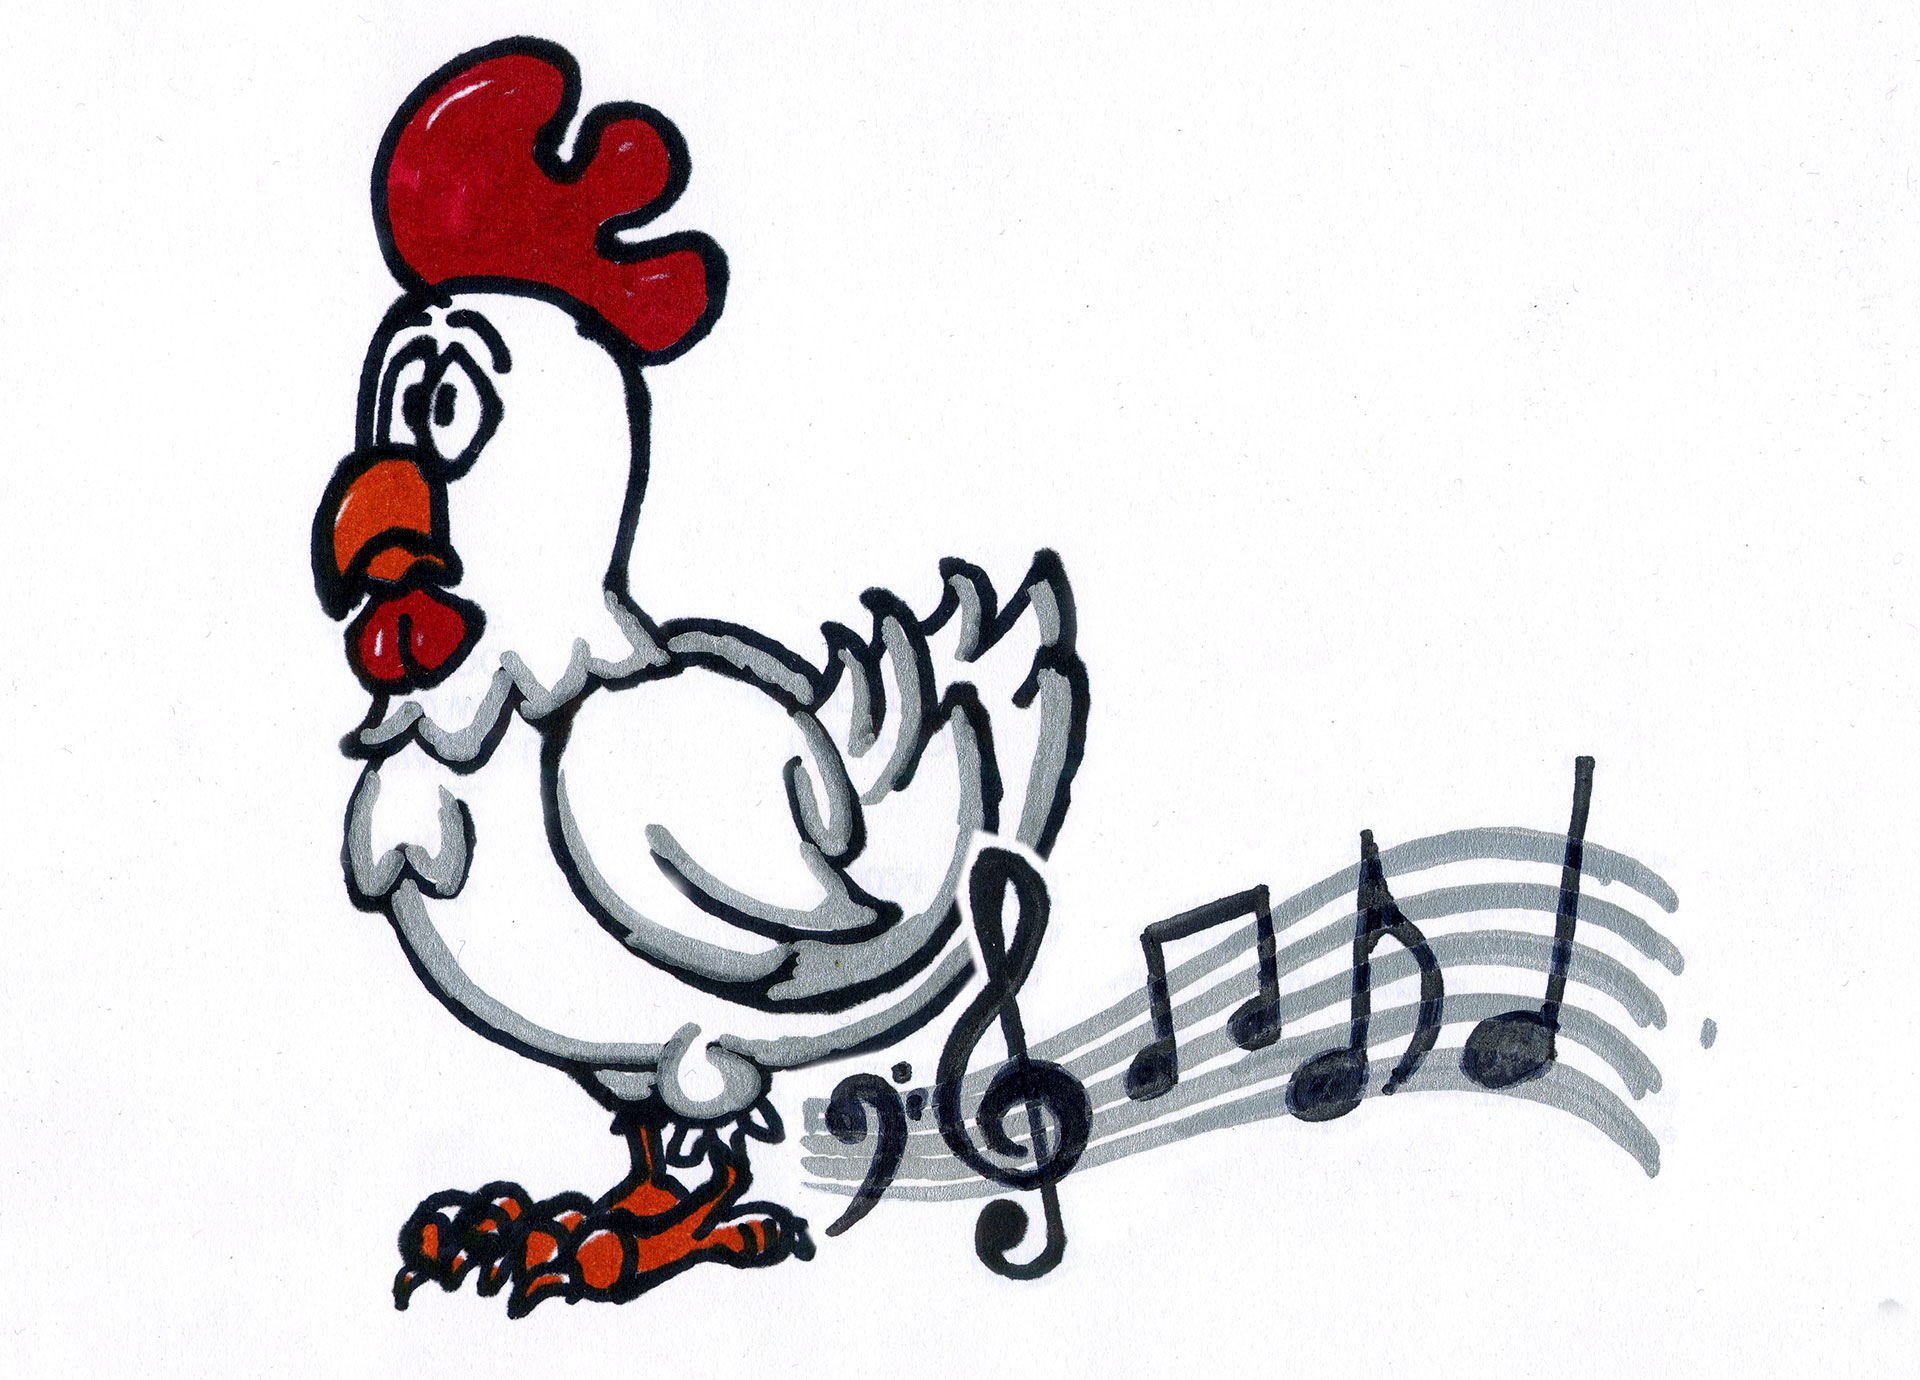 The Chicken Or The Egg - The Lyrics Or The Tune?